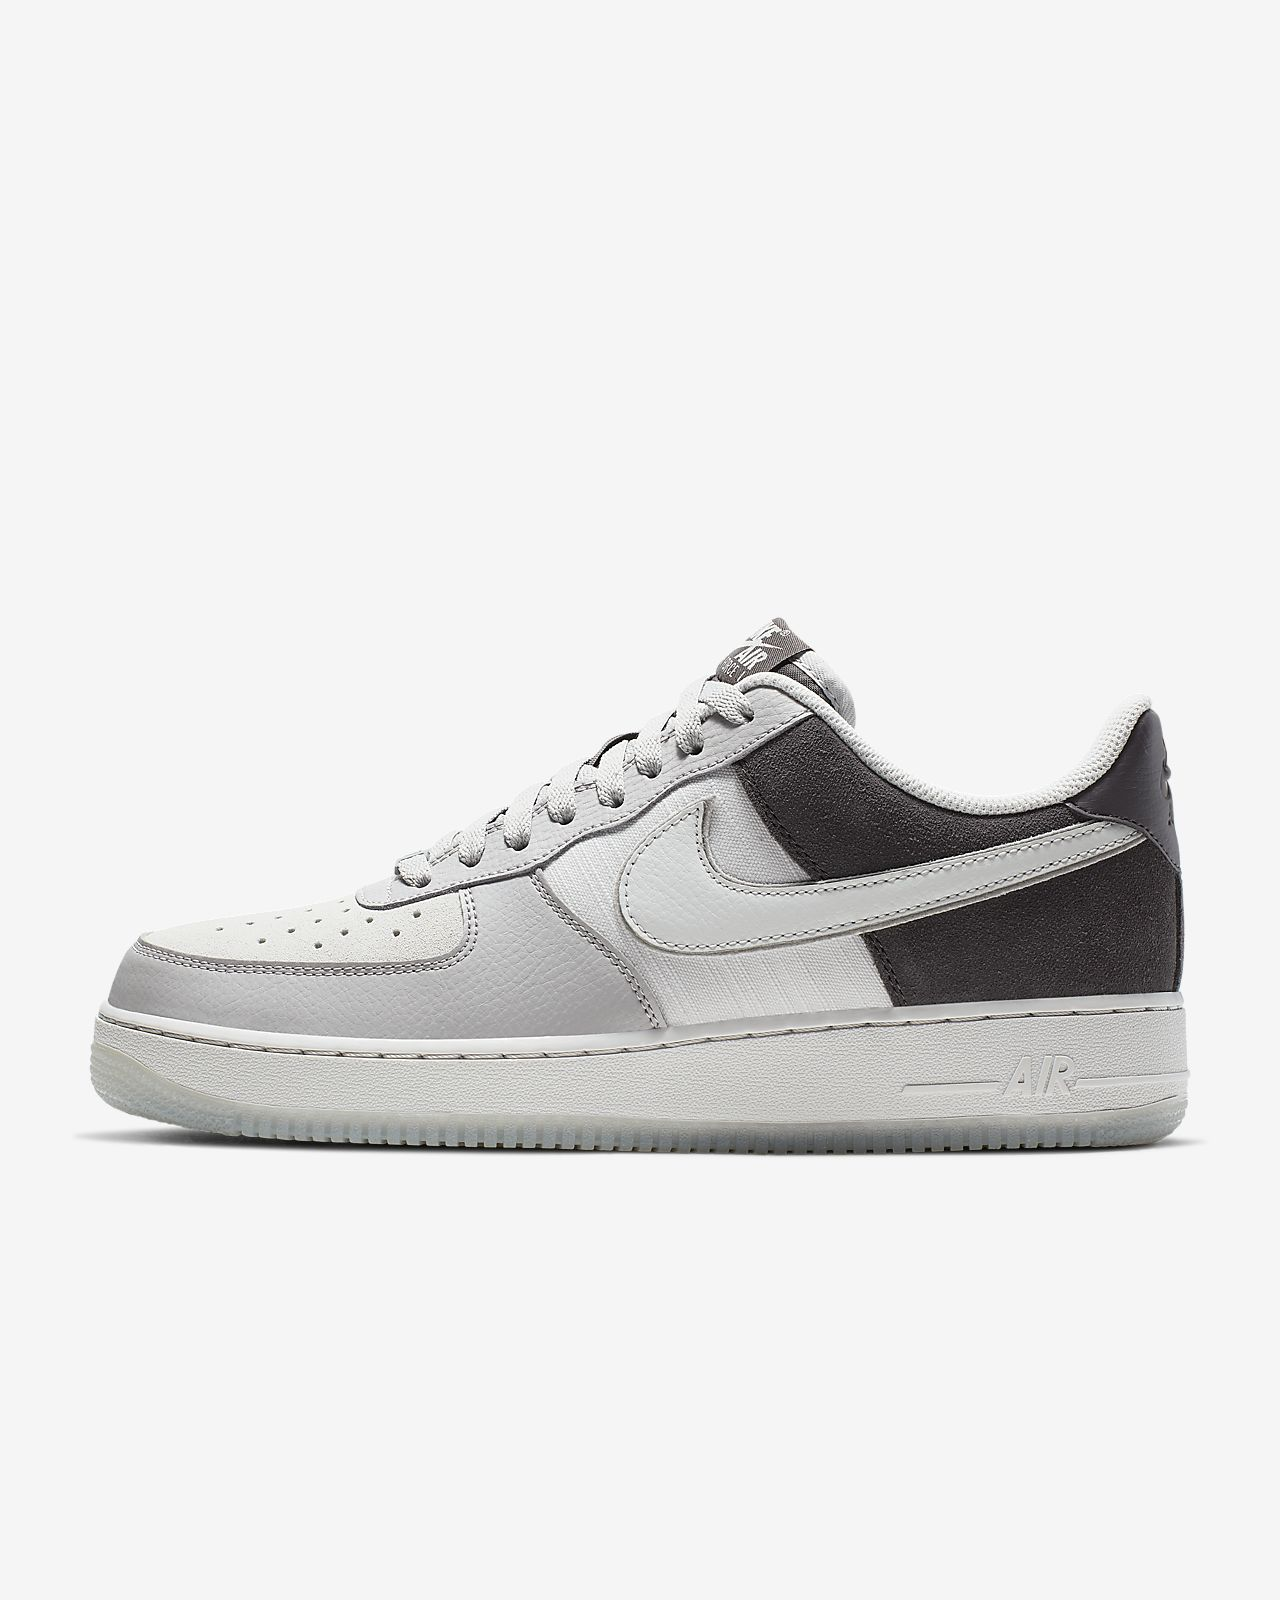 718152_005 Autunno Inverno 2018 Uomo Nike Air Force 1 07